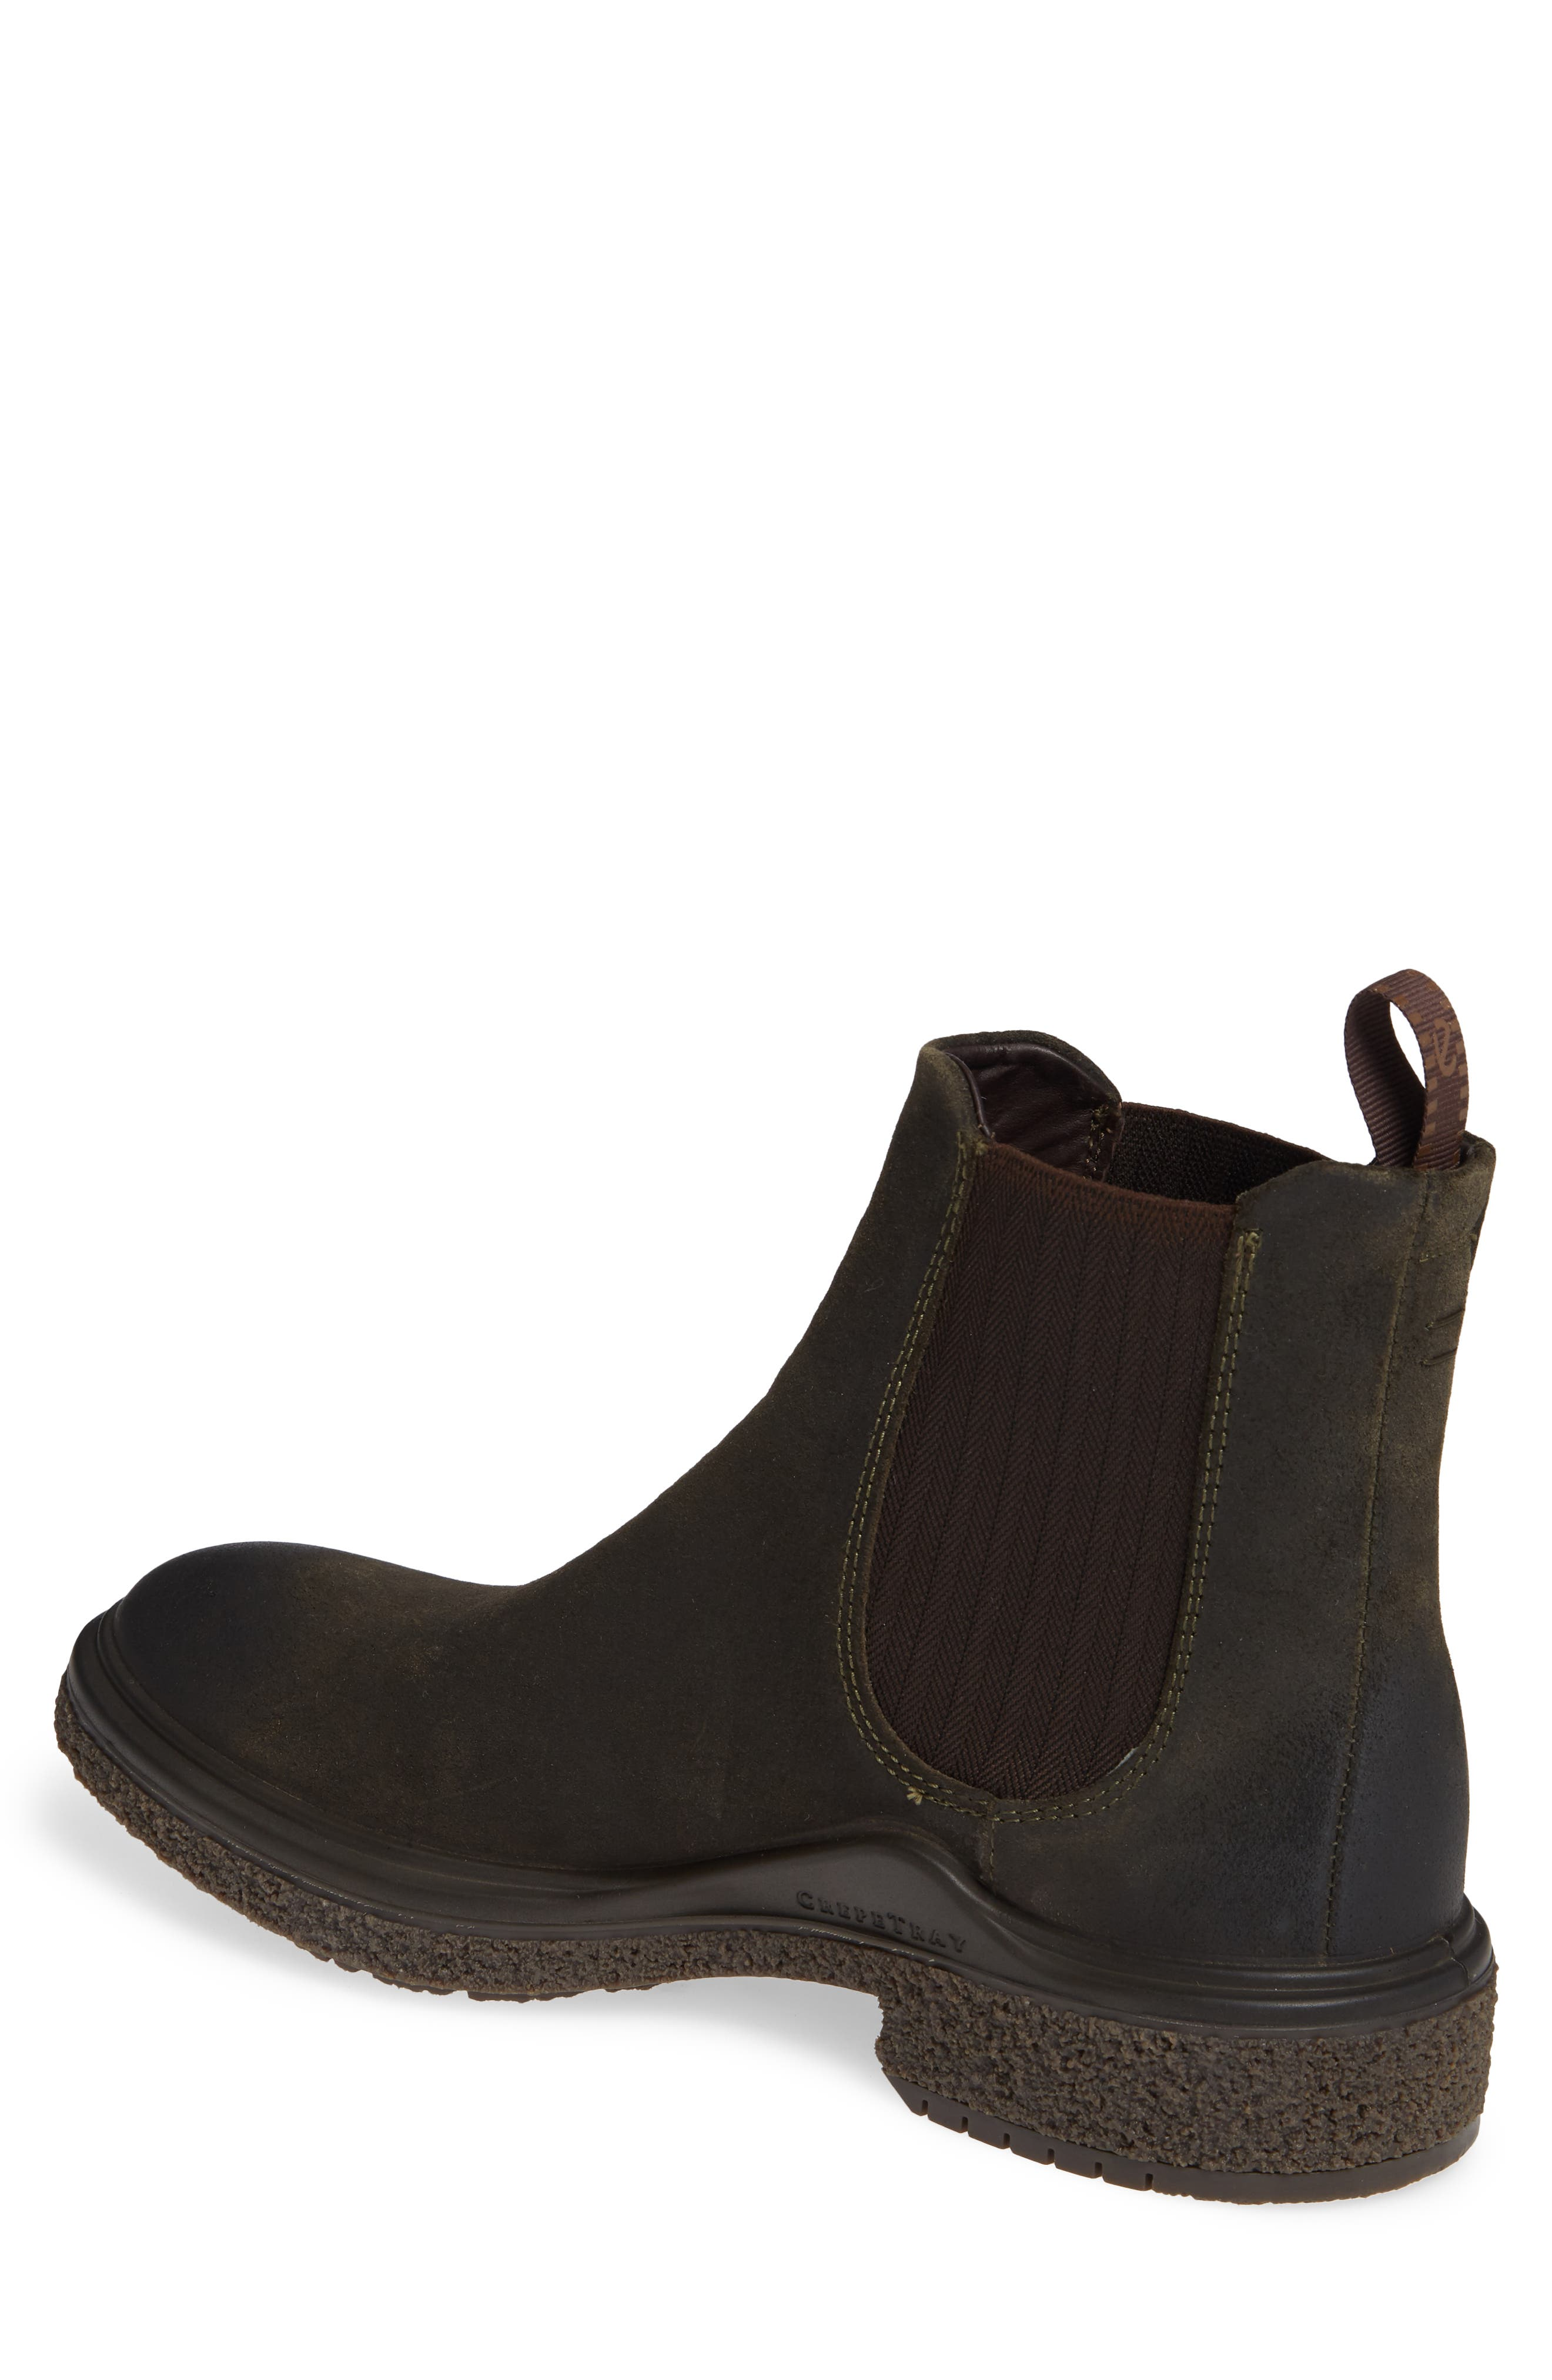 Crepetray Chelsea Boot,                             Alternate thumbnail 2, color,                             TARMAC SUEDE